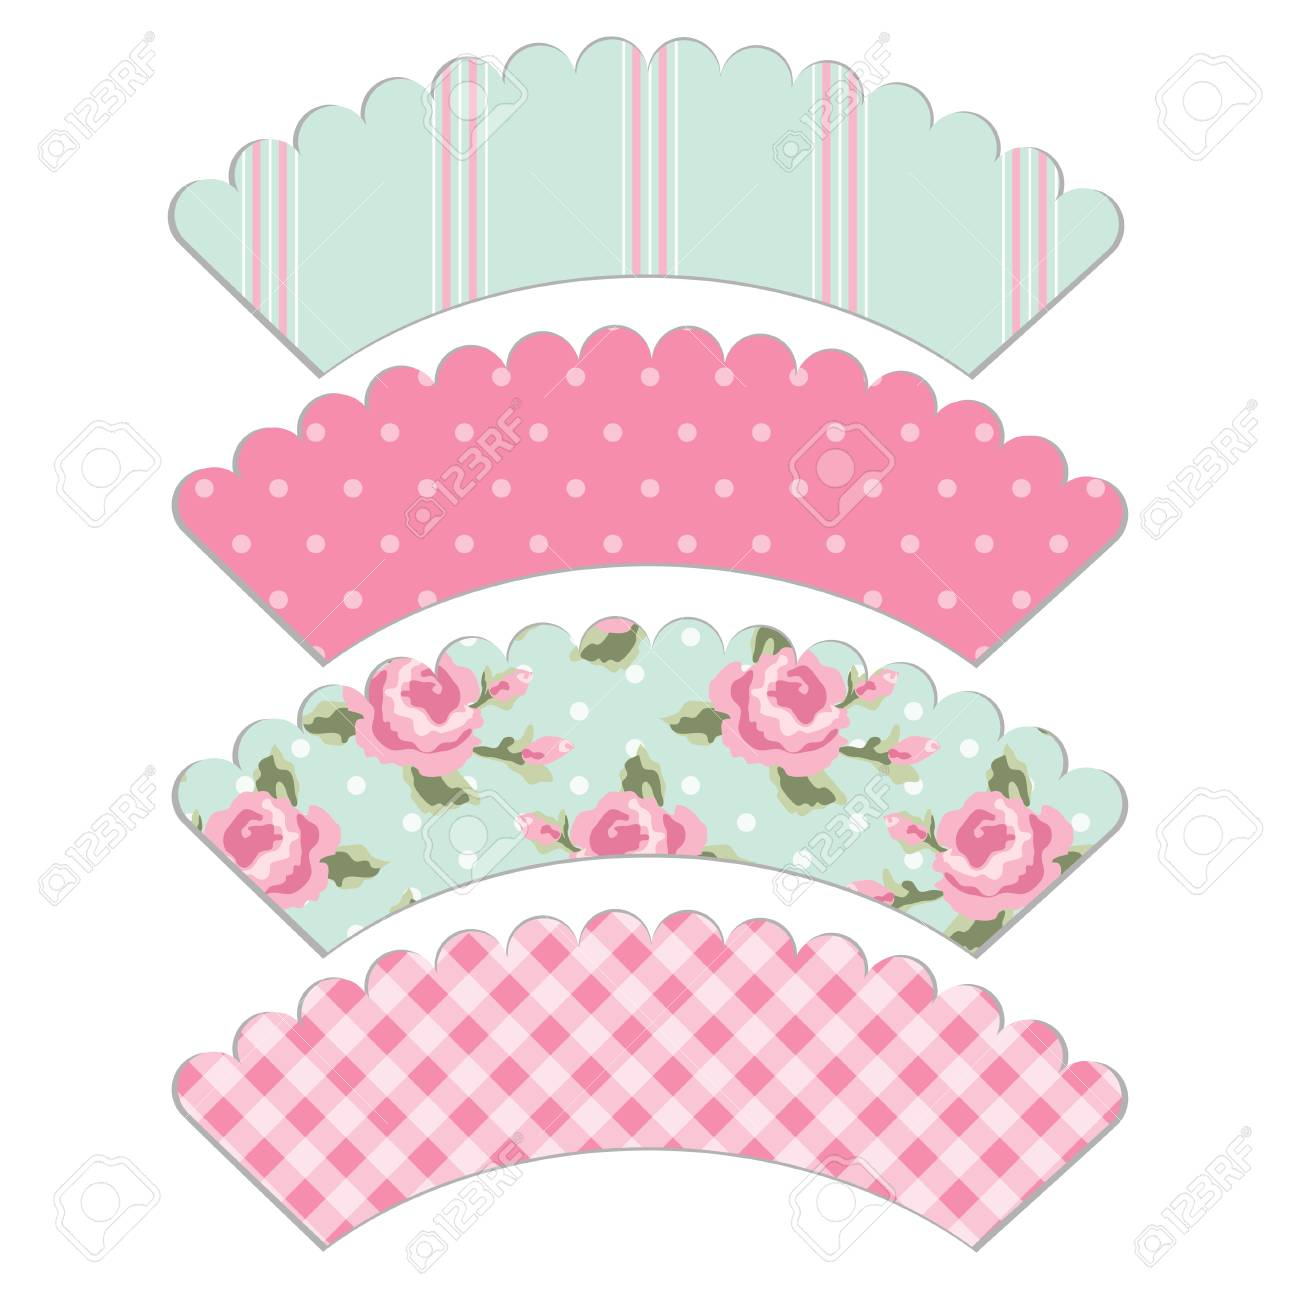 Cupcake Wrapper Template | Set Of Retro Cupcake Wrapper Templates In Shabby Chic Style Royalty